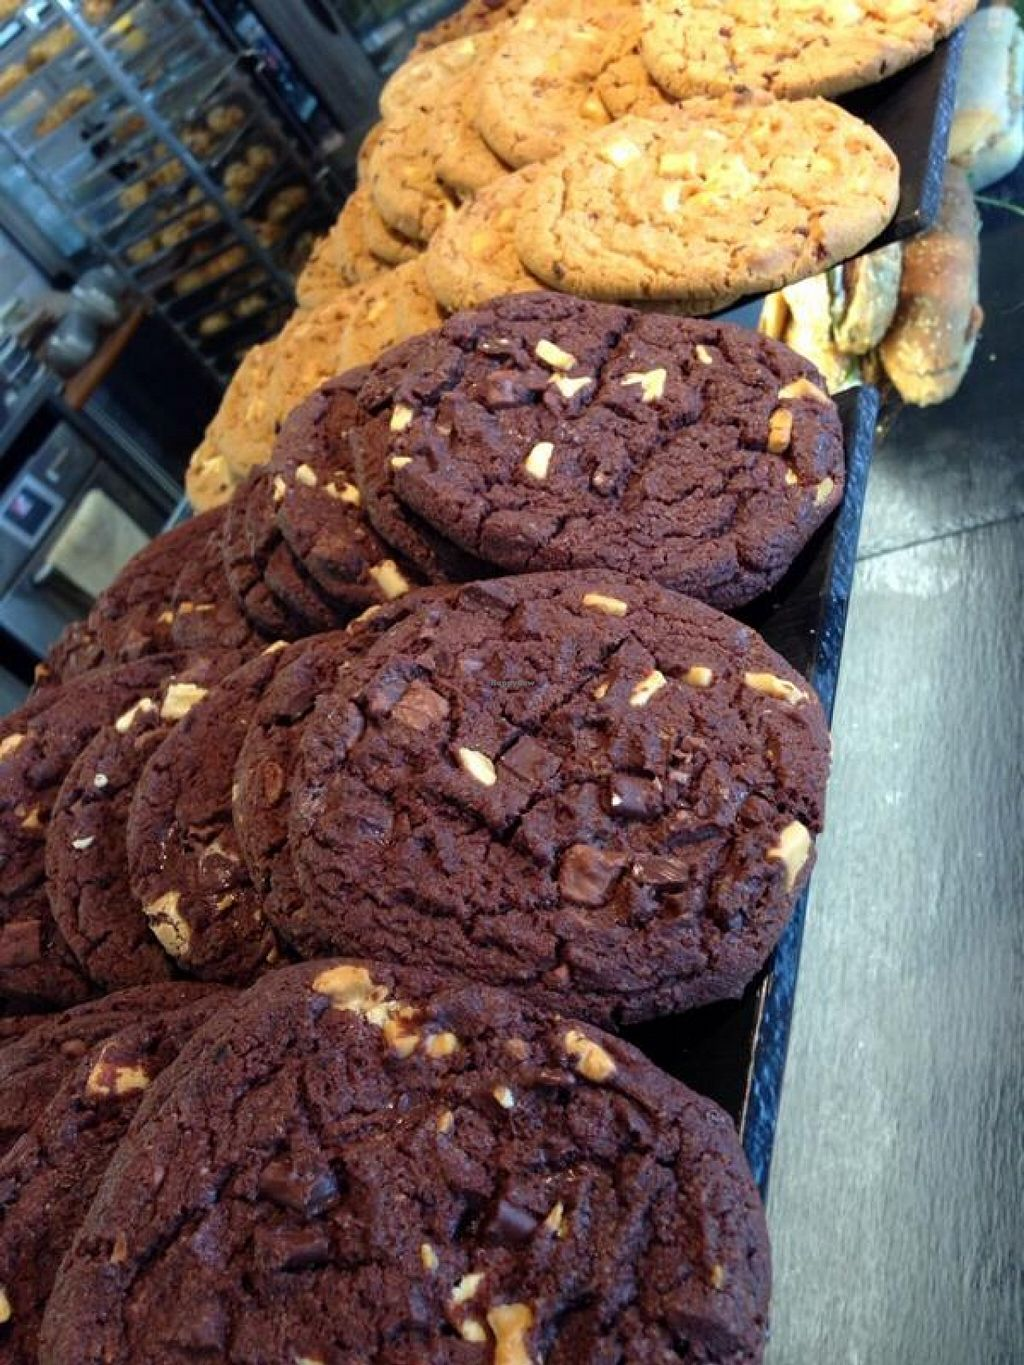 """Photo of The View Deli  by <a href=""""/members/profile/community"""">community</a> <br/>cookies <br/> May 17, 2016  - <a href='/contact/abuse/image/68162/149435'>Report</a>"""